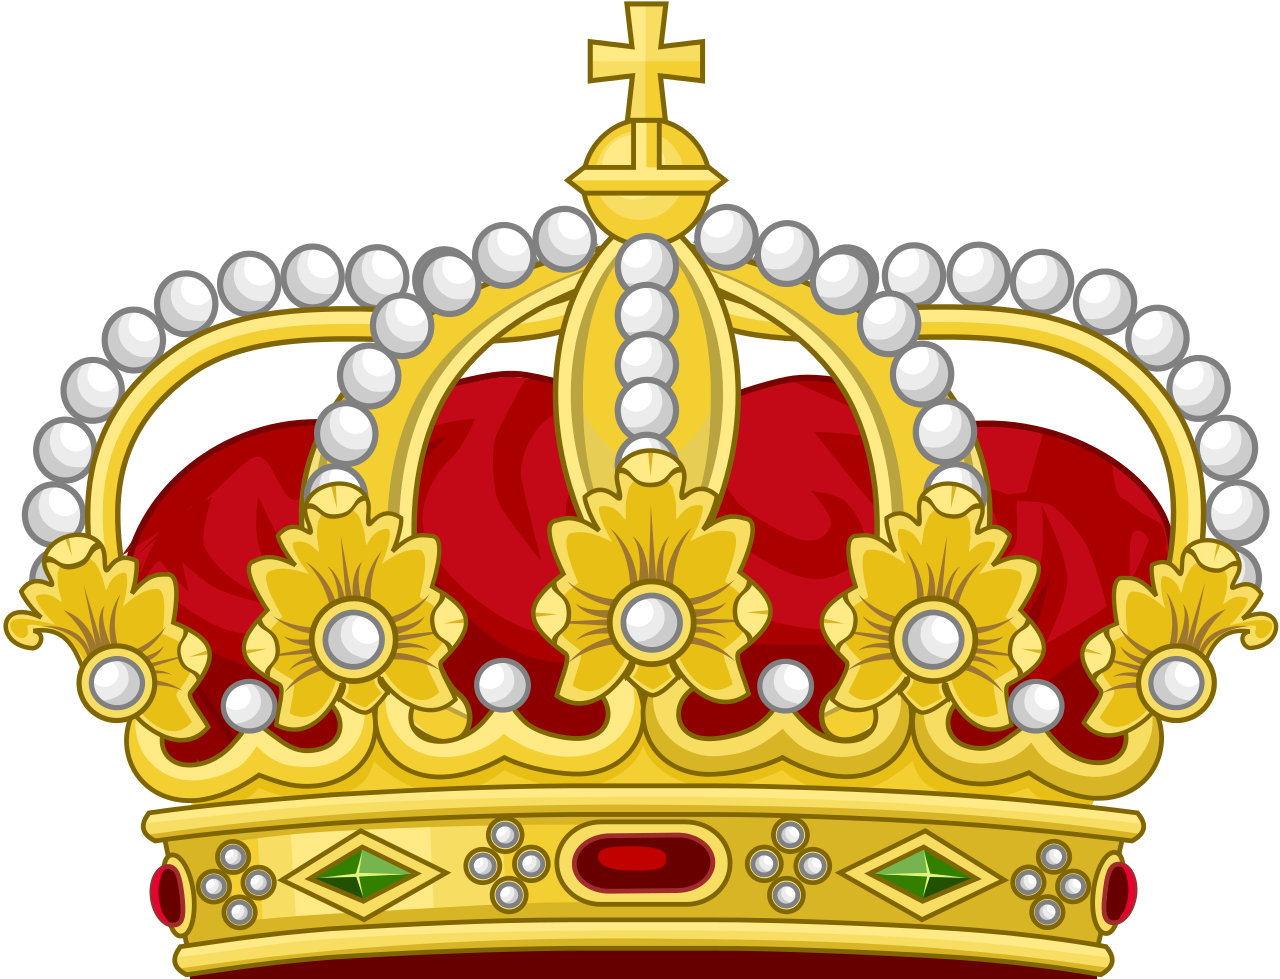 Free clipart king crown picture black and white download File:Heraldic Royal Crown of the King of the Romans (18th Century ... picture black and white download